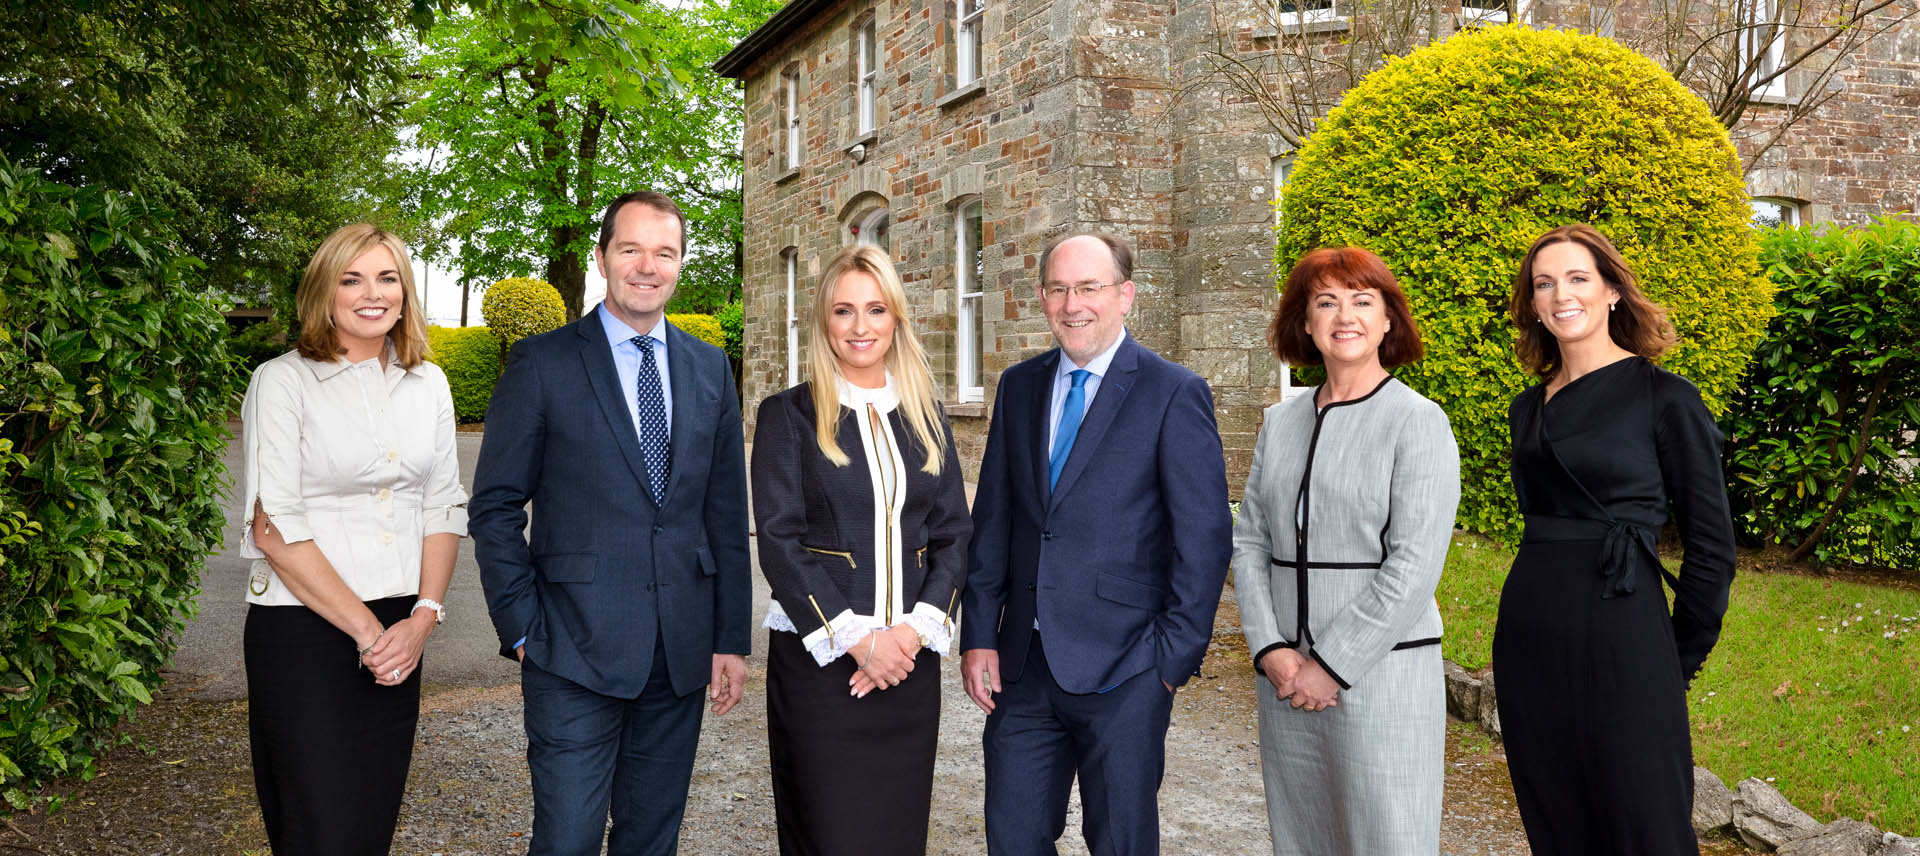 Solicitors Carrigaline Cork Ahern Roberts ORourke Williams